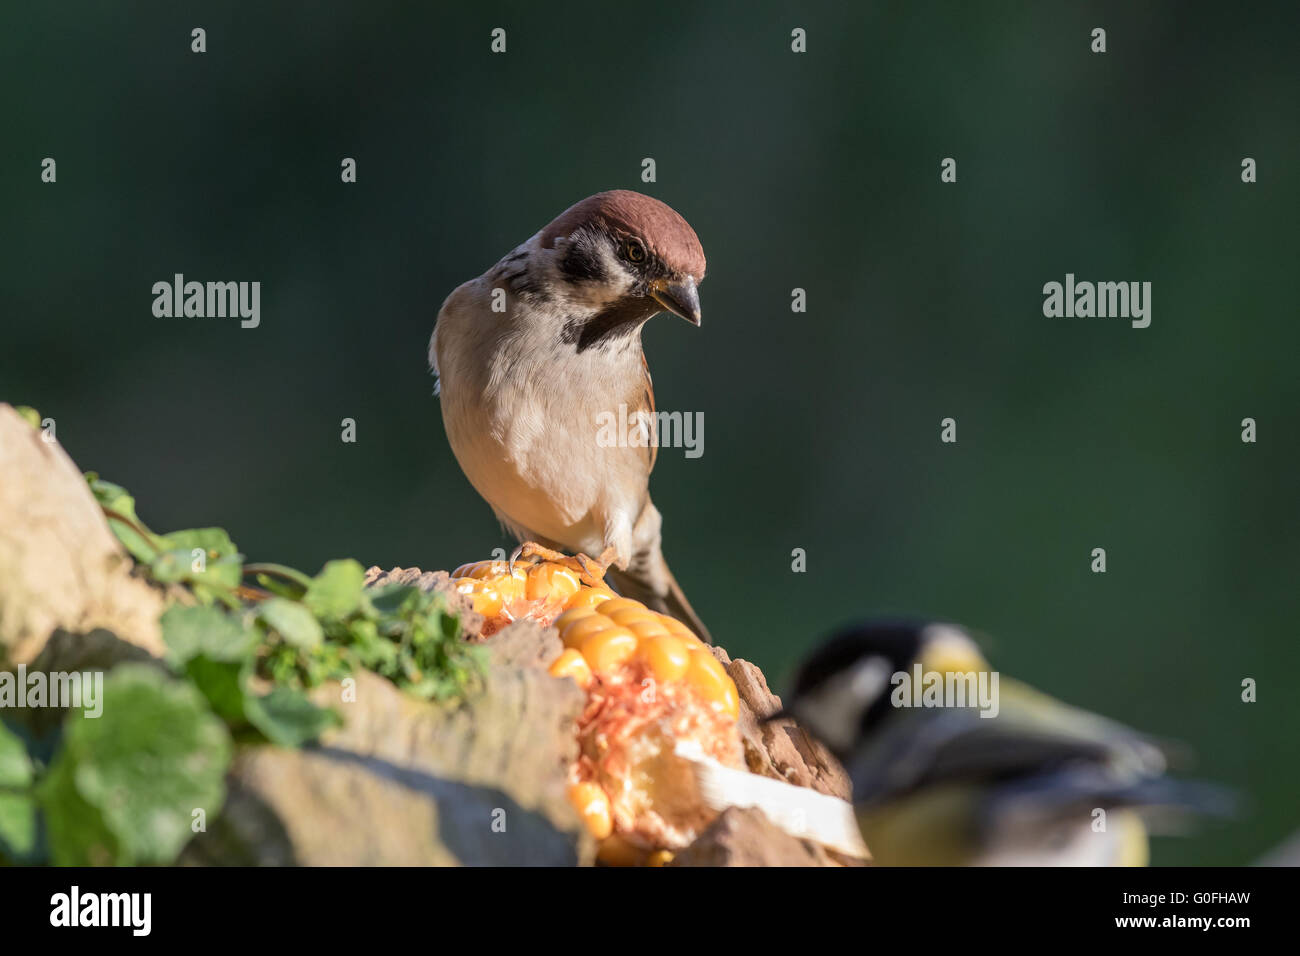 Sparrow in search of food - Stock Image